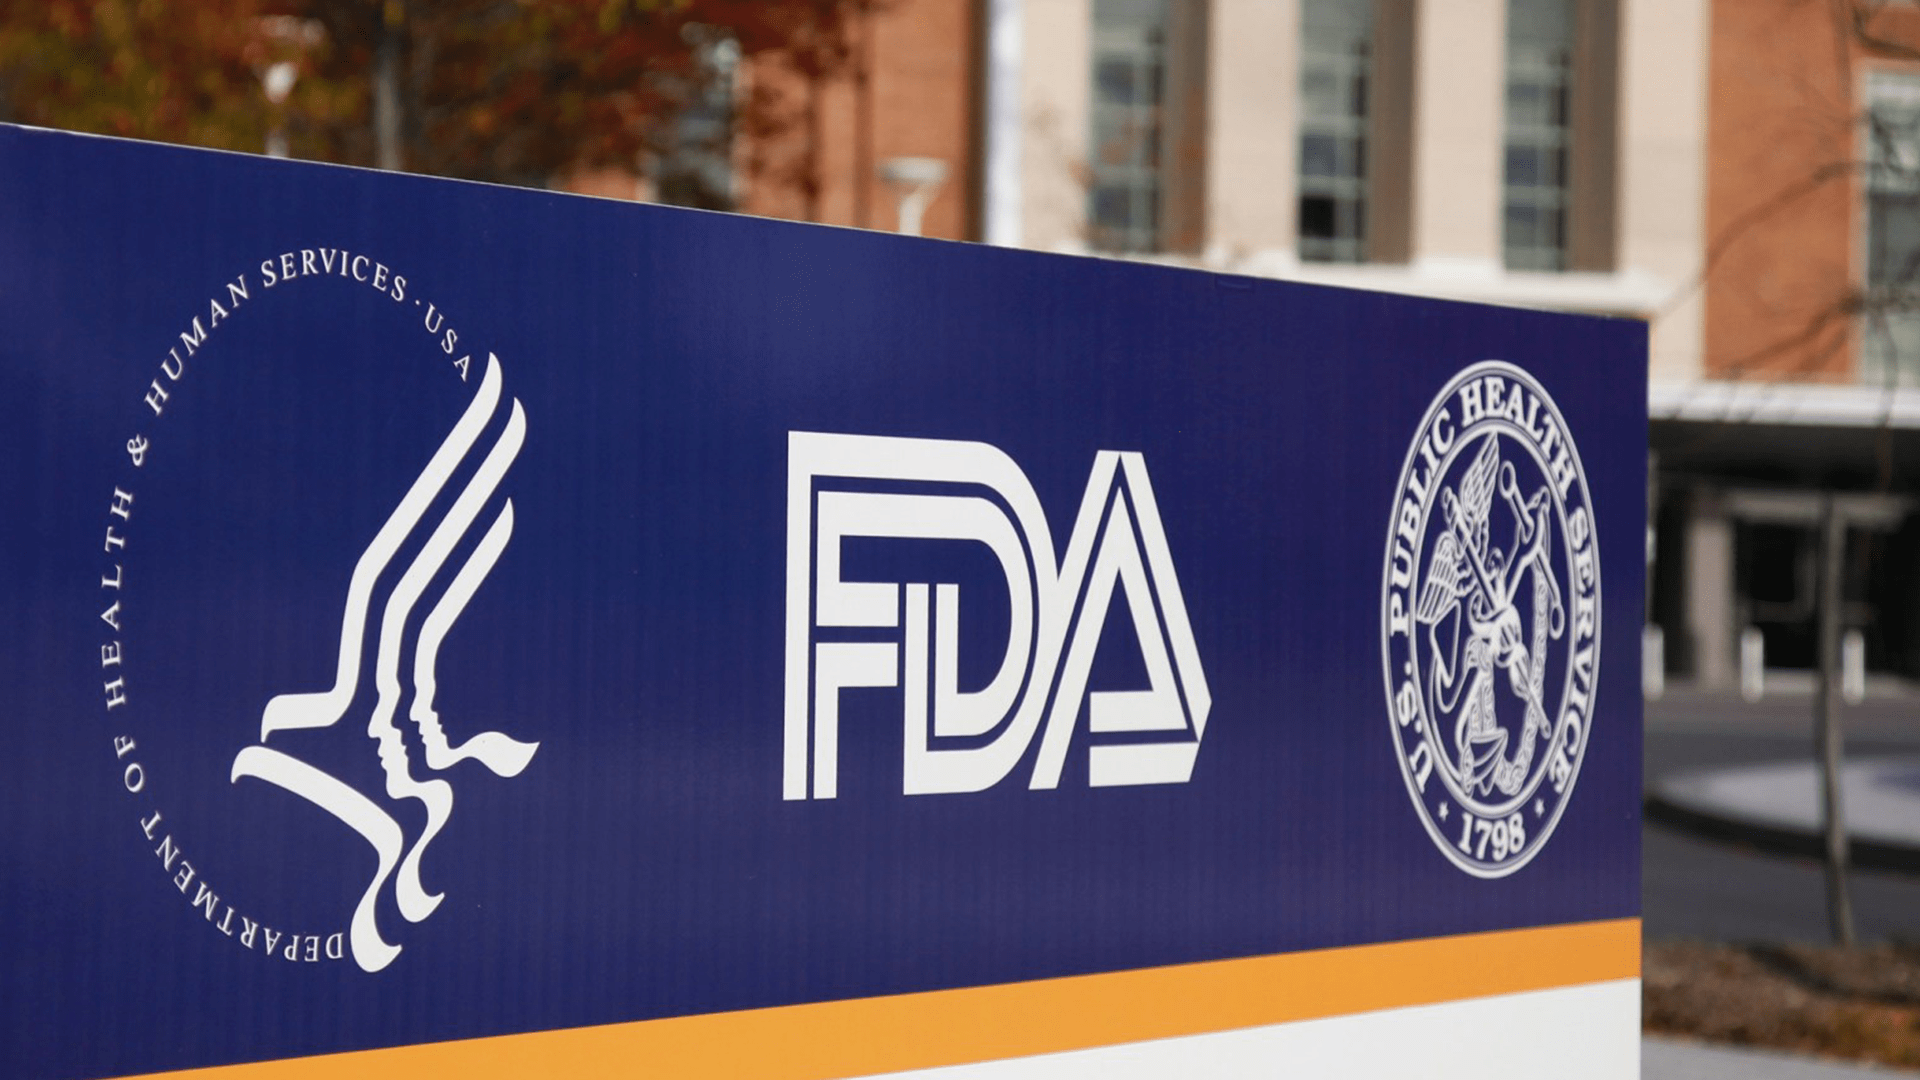 Pro-Life Leaders Ask FDA to Remove 'Highly Dangerous' Abortion Pill from the Market